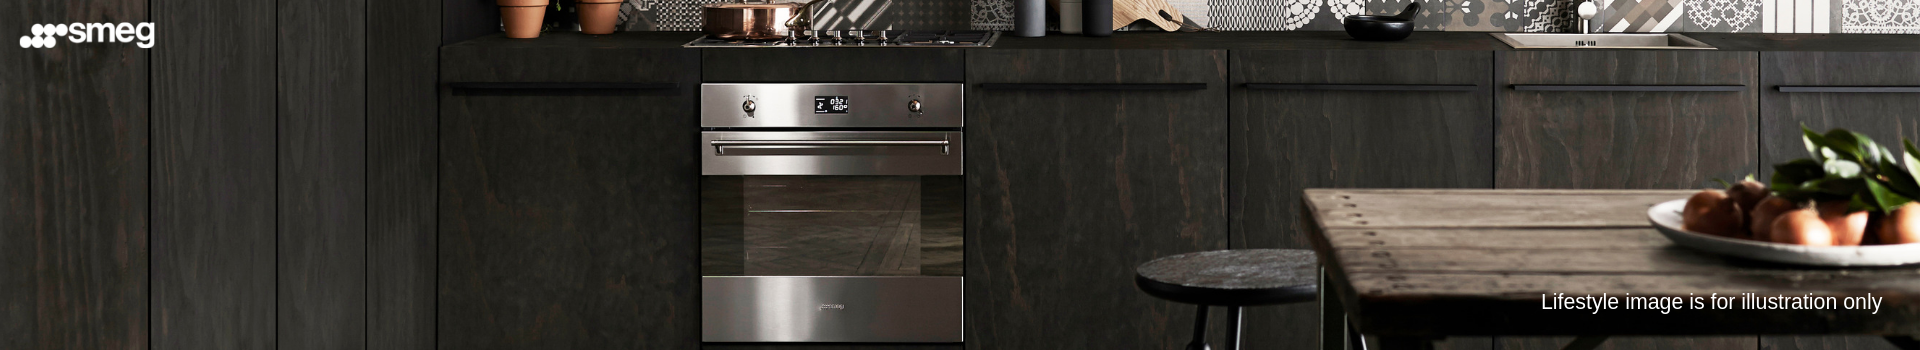 Smeg Mid Year Sale: Classic Aesthetic Cooking Package: $1999 (U.P. $3,840)